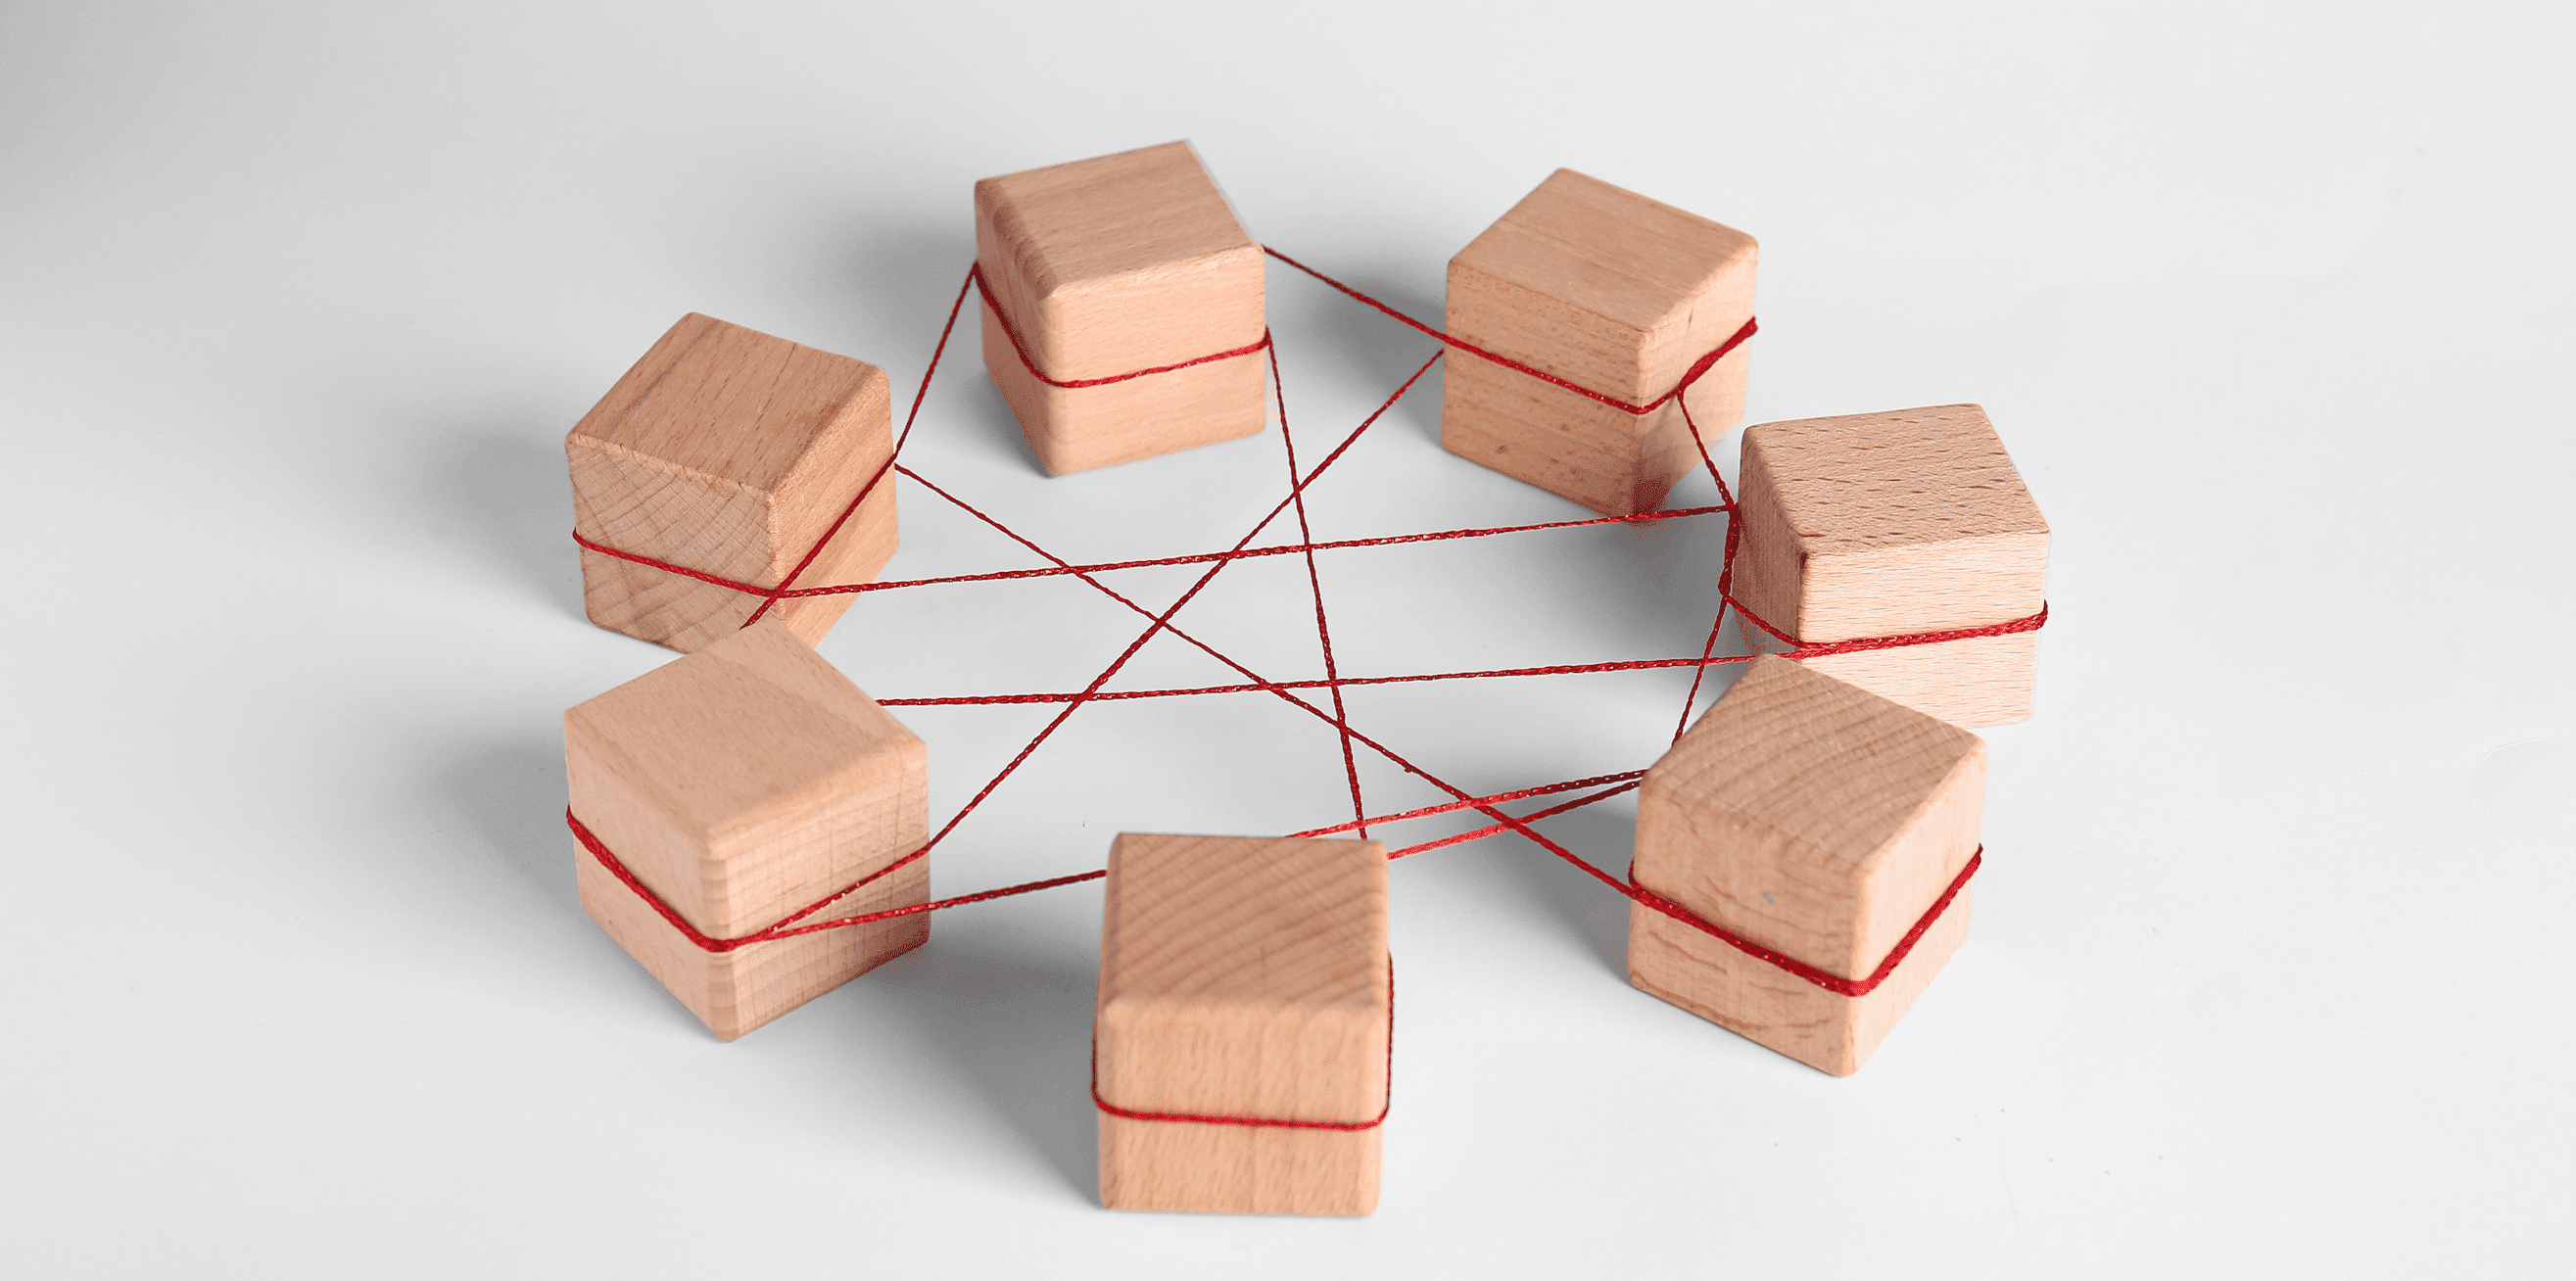 Wooden cubes tied with red thread